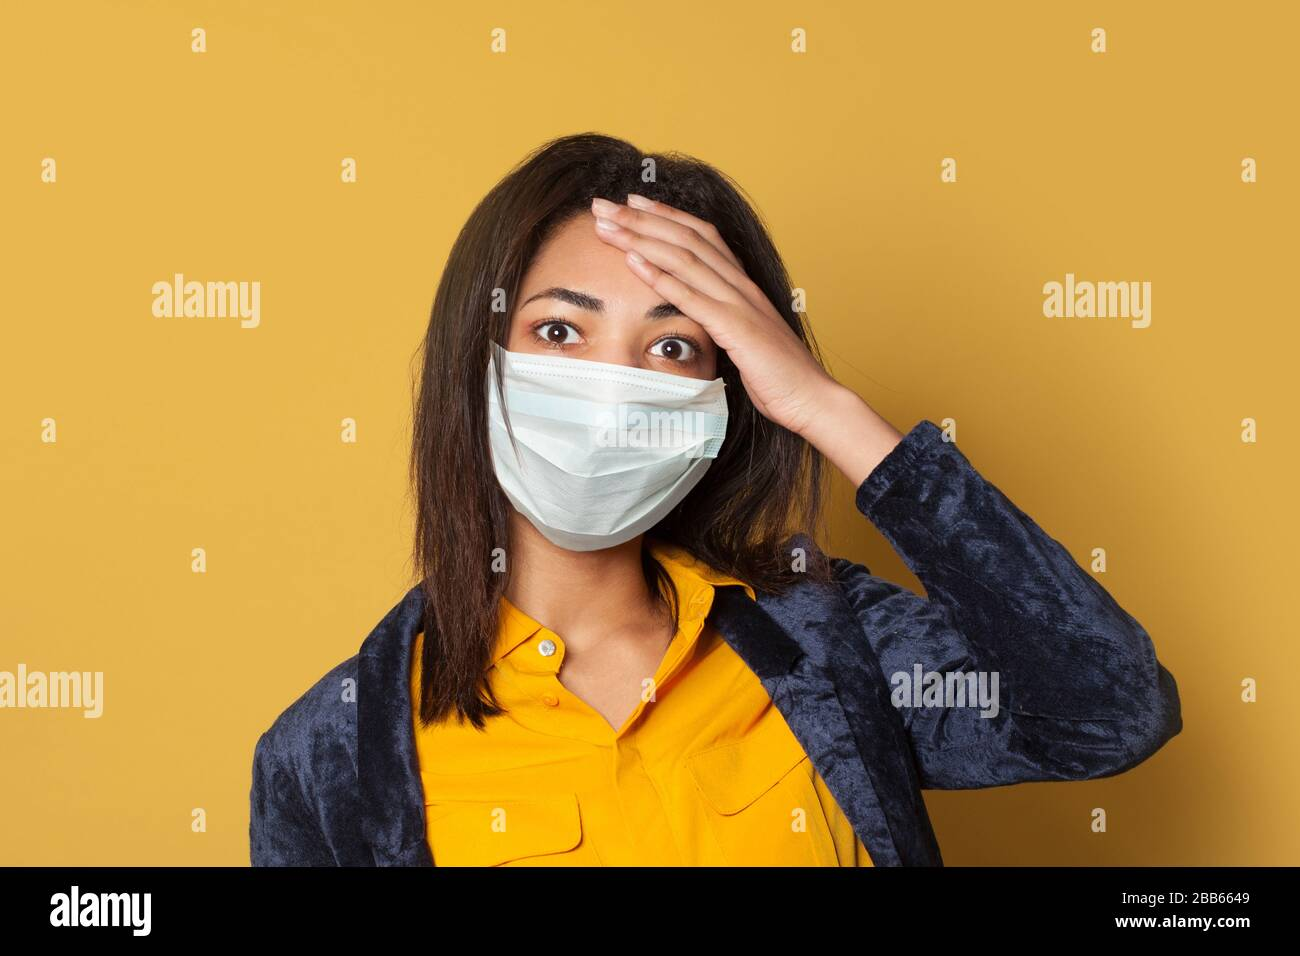 Panicking sick black woman on yellow. Epidemic and virus protection concept Stock Photo